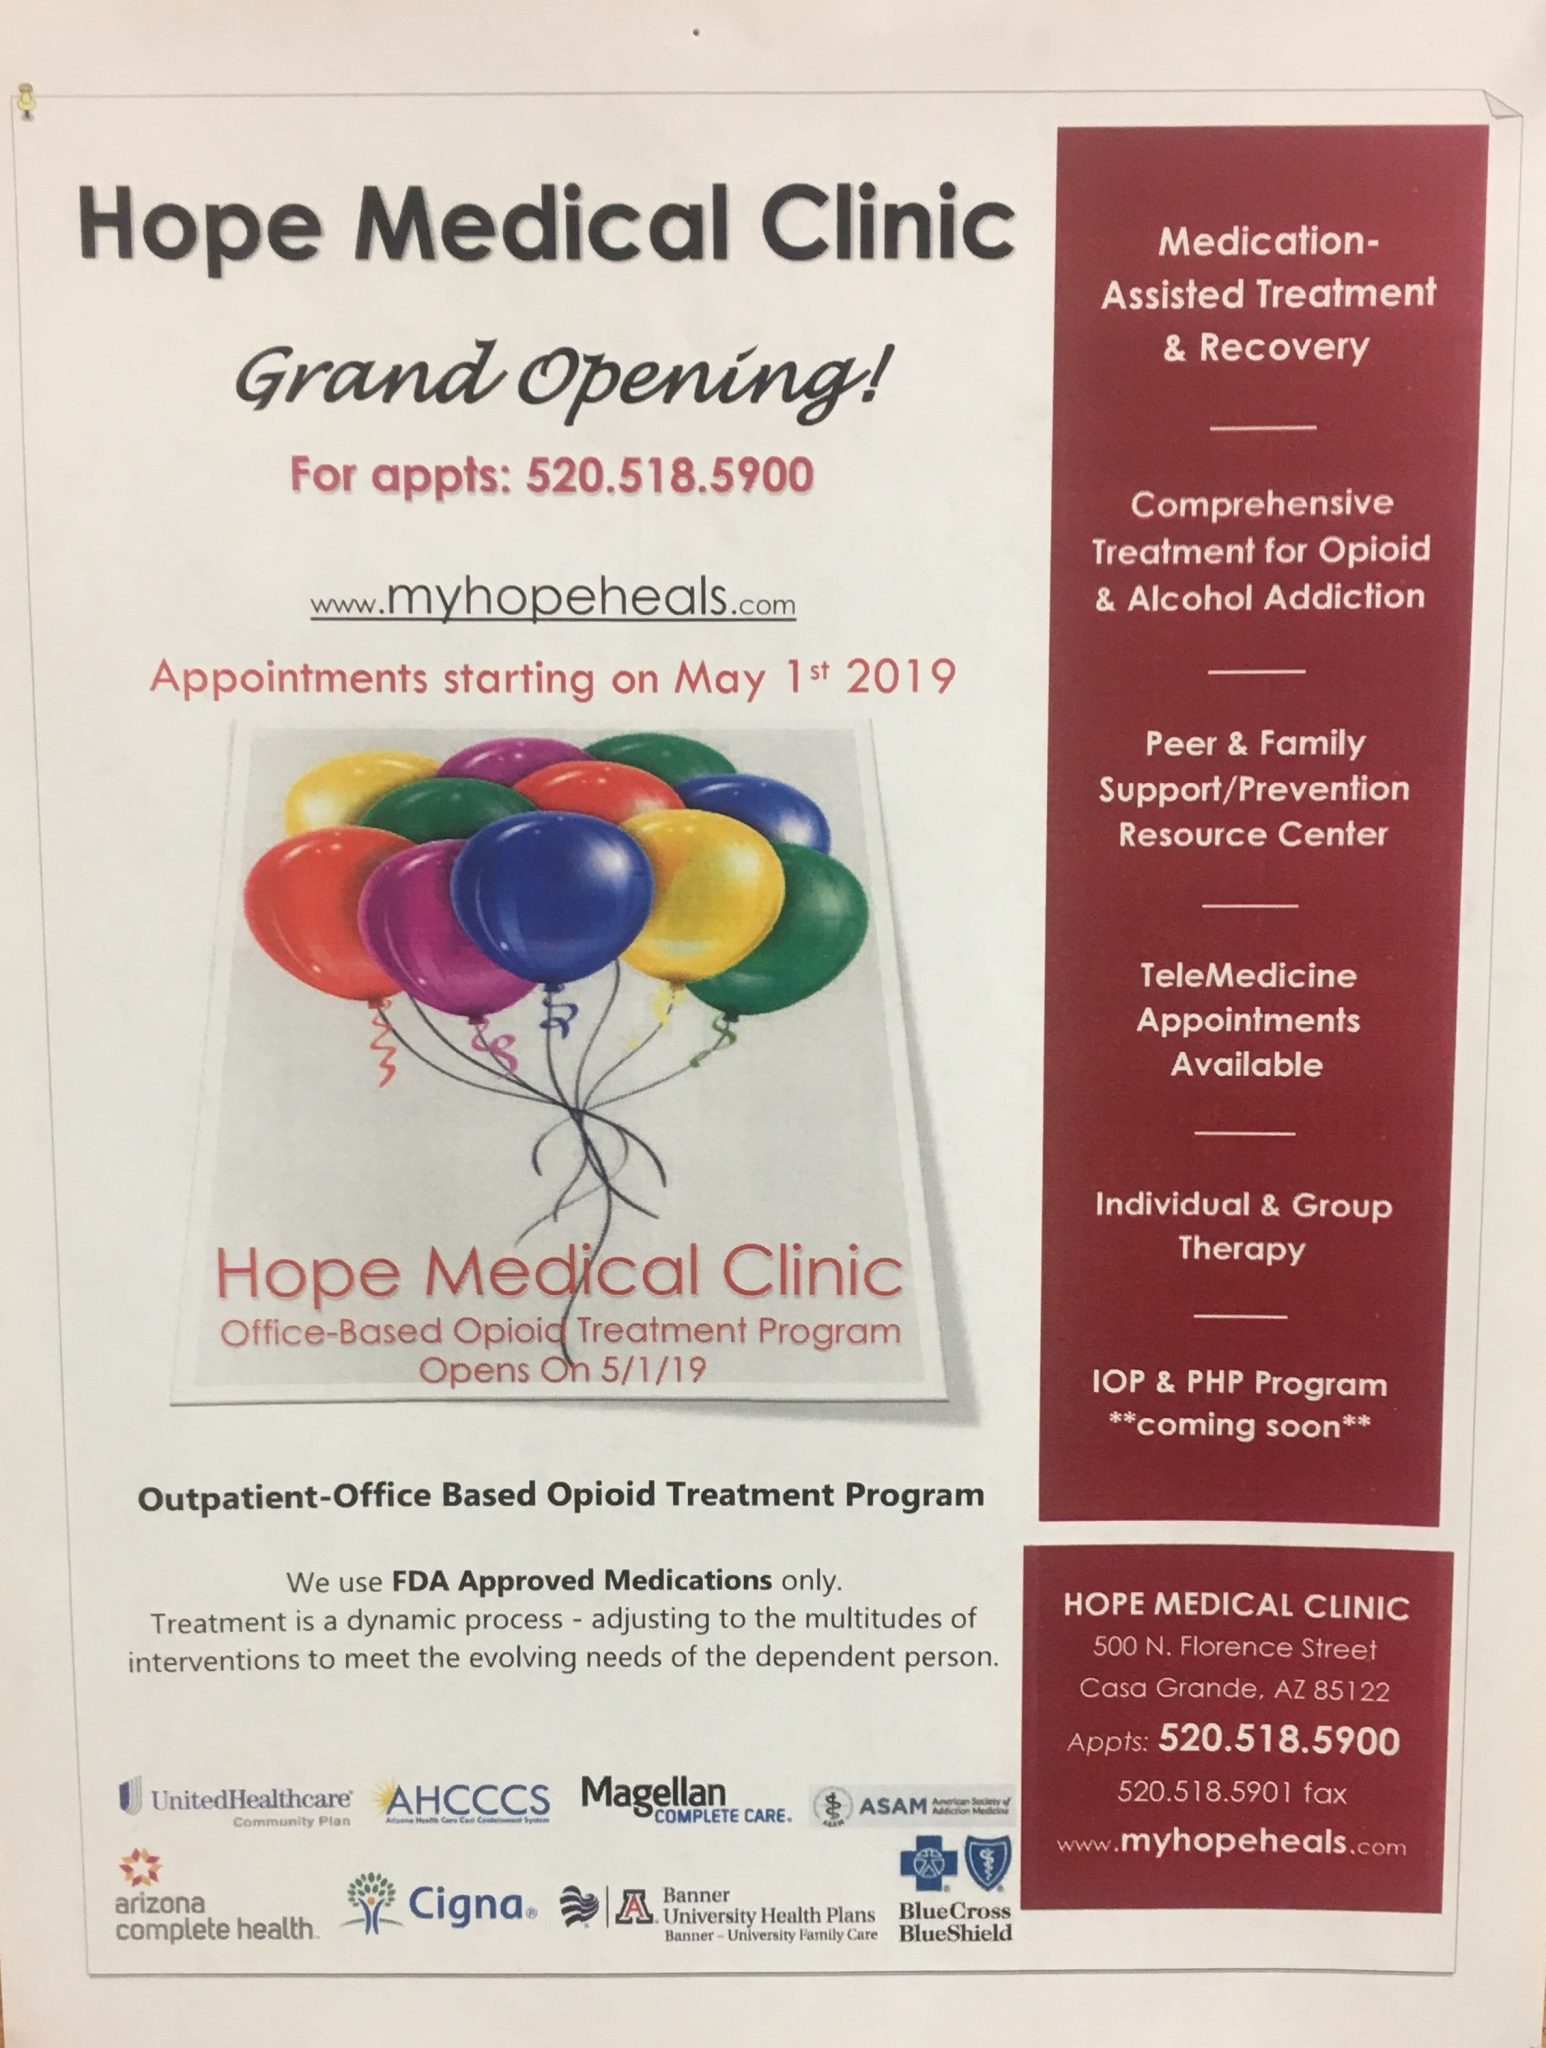 Hope Medical Clinic